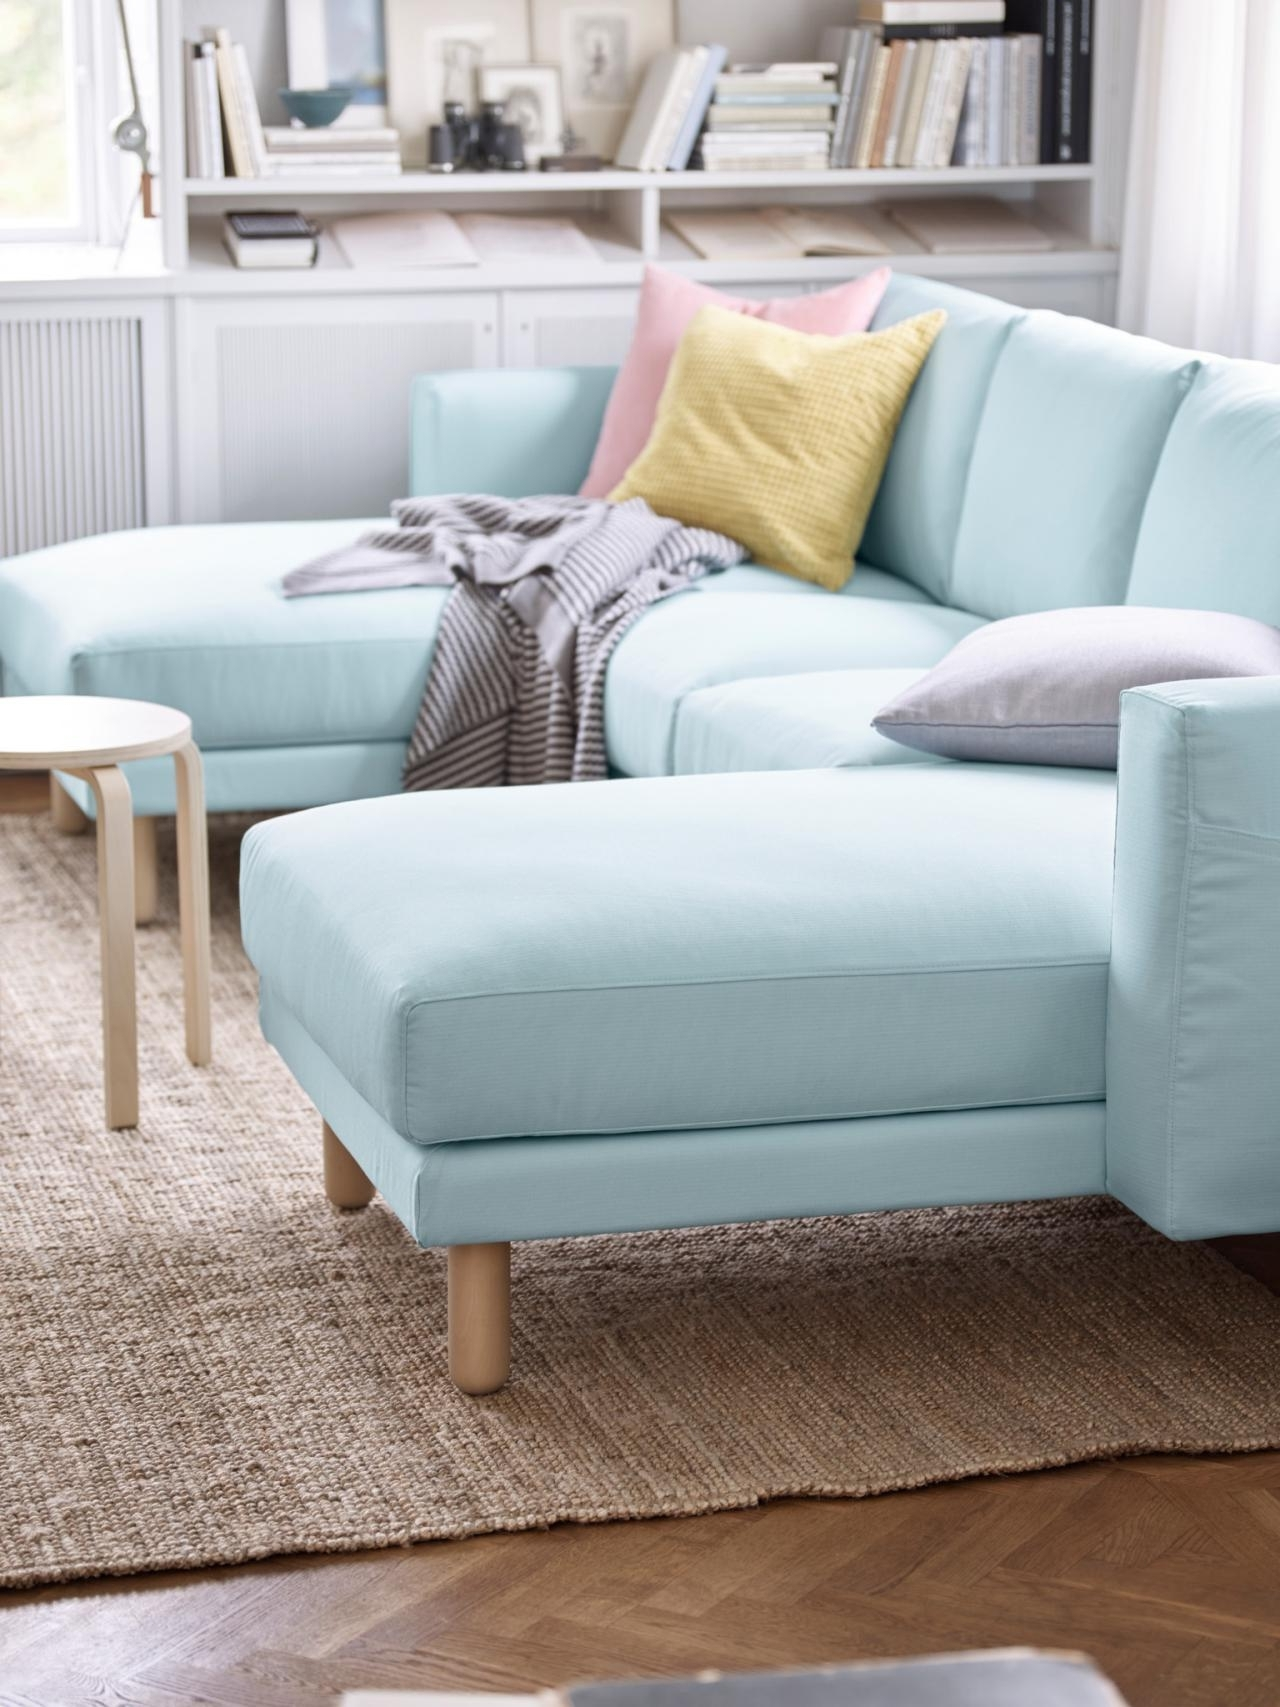 5 Apartment Sized Sofas That Are Lifesavers (Gallery 2 of 15)